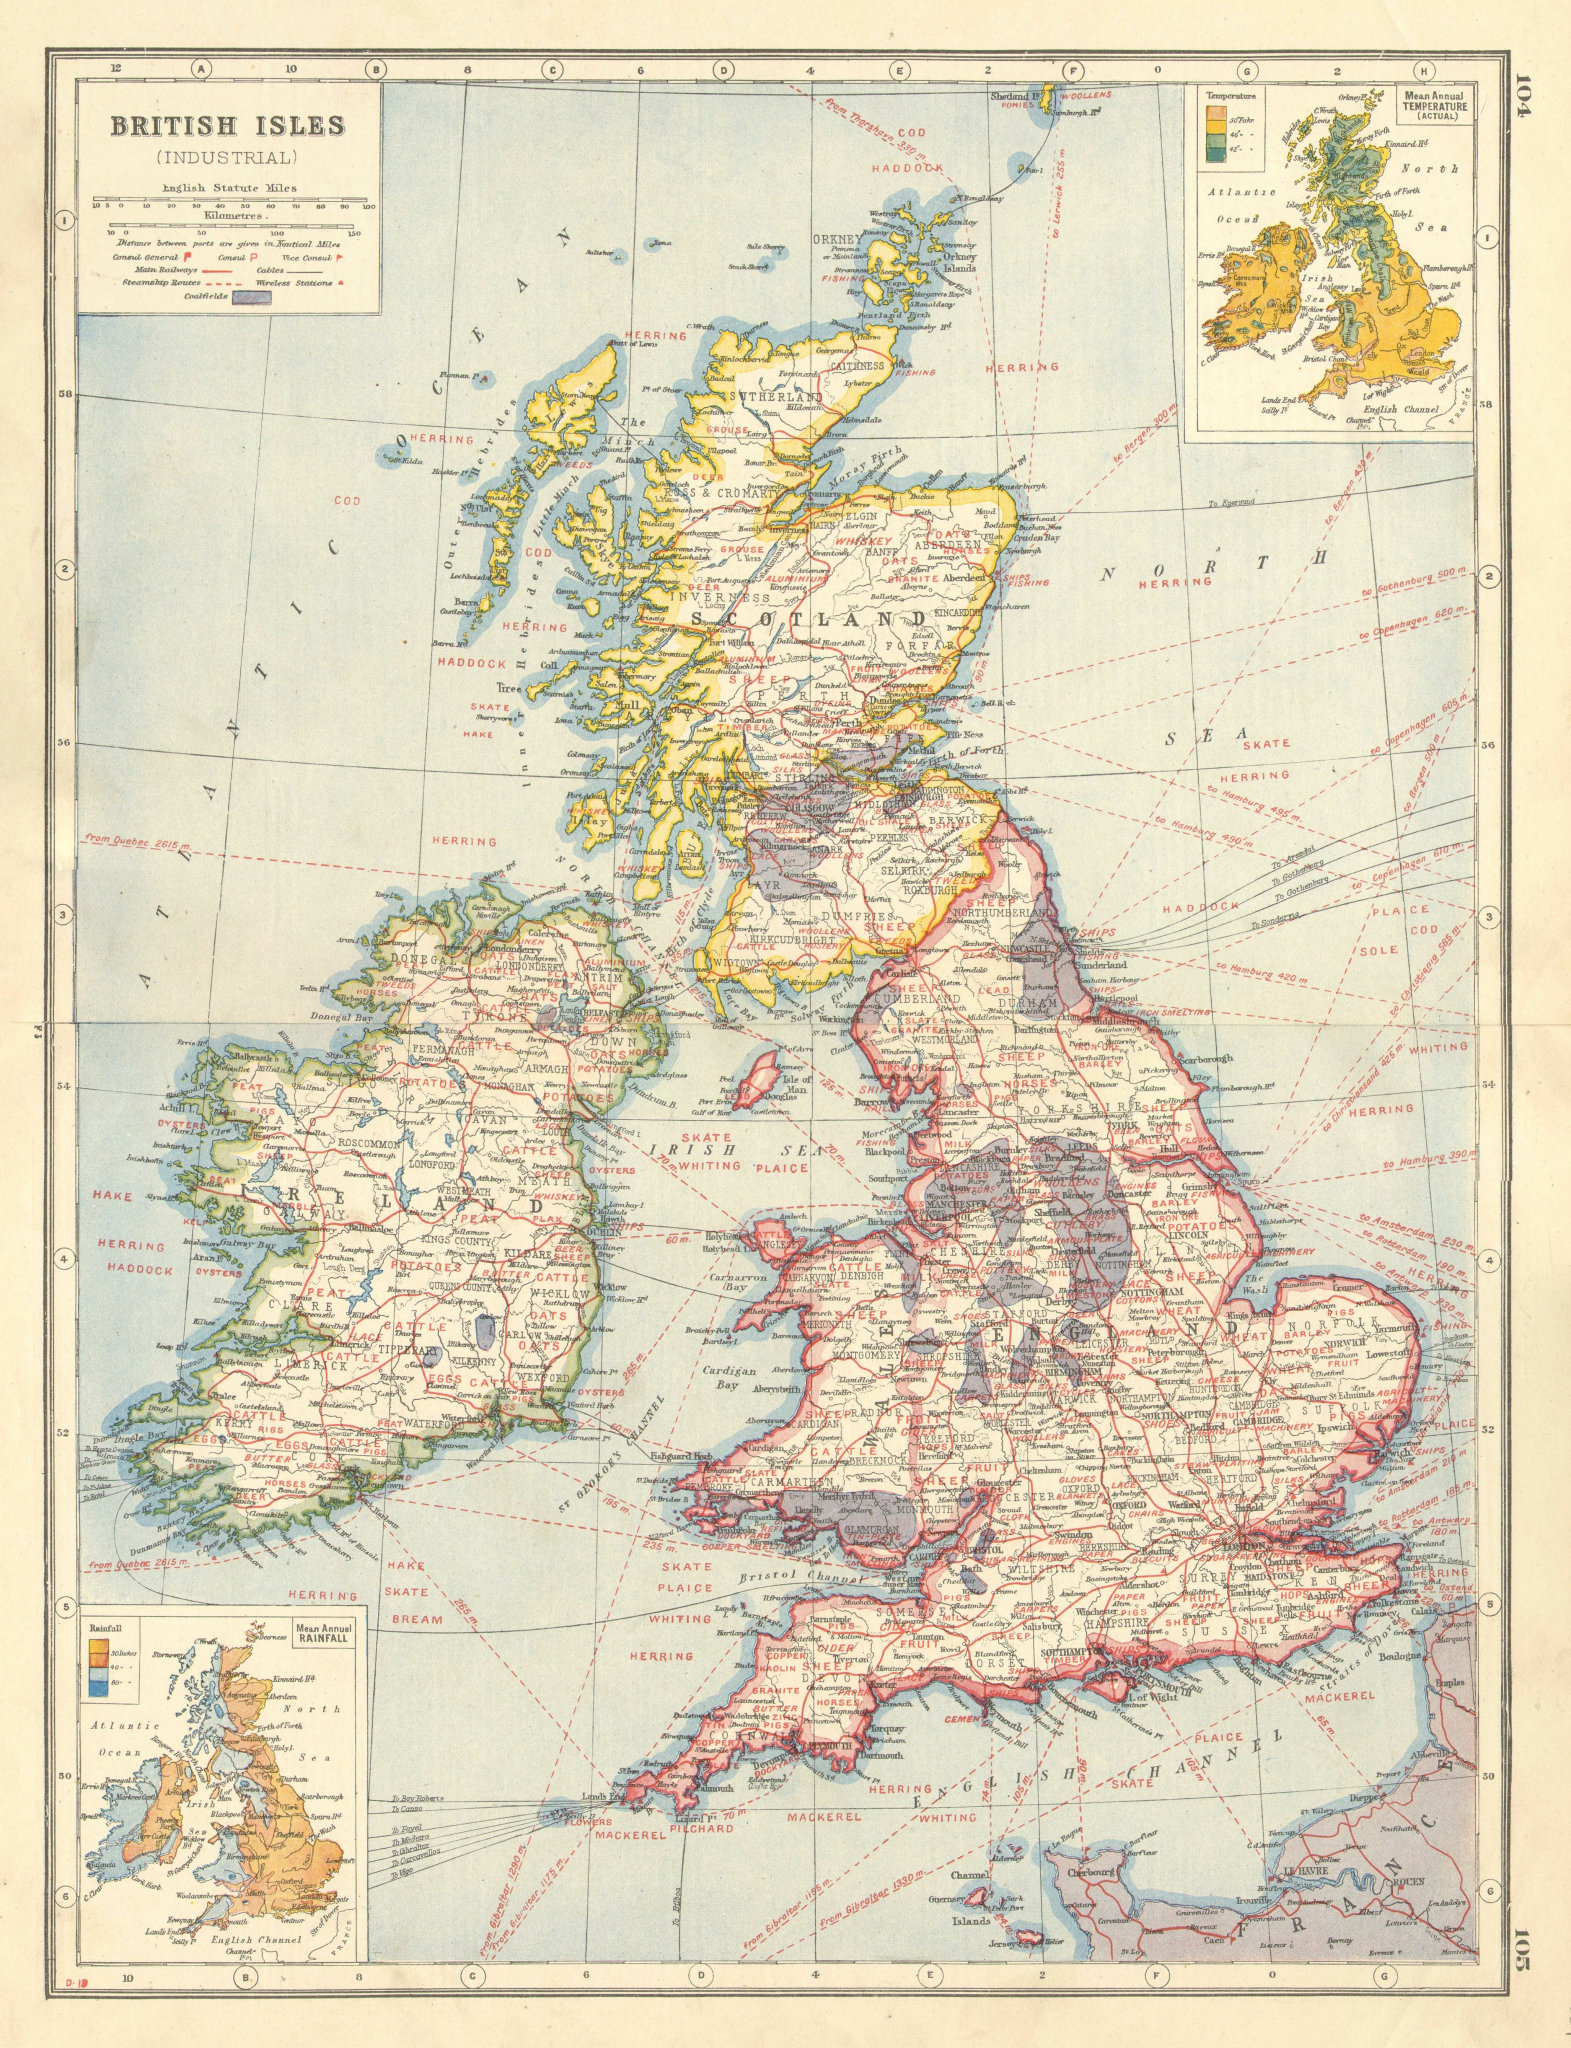 Associate Product BRITISH ISLES AGRICULTURAL/INDUSTRIAL. Showing key products coalfields 1920 map